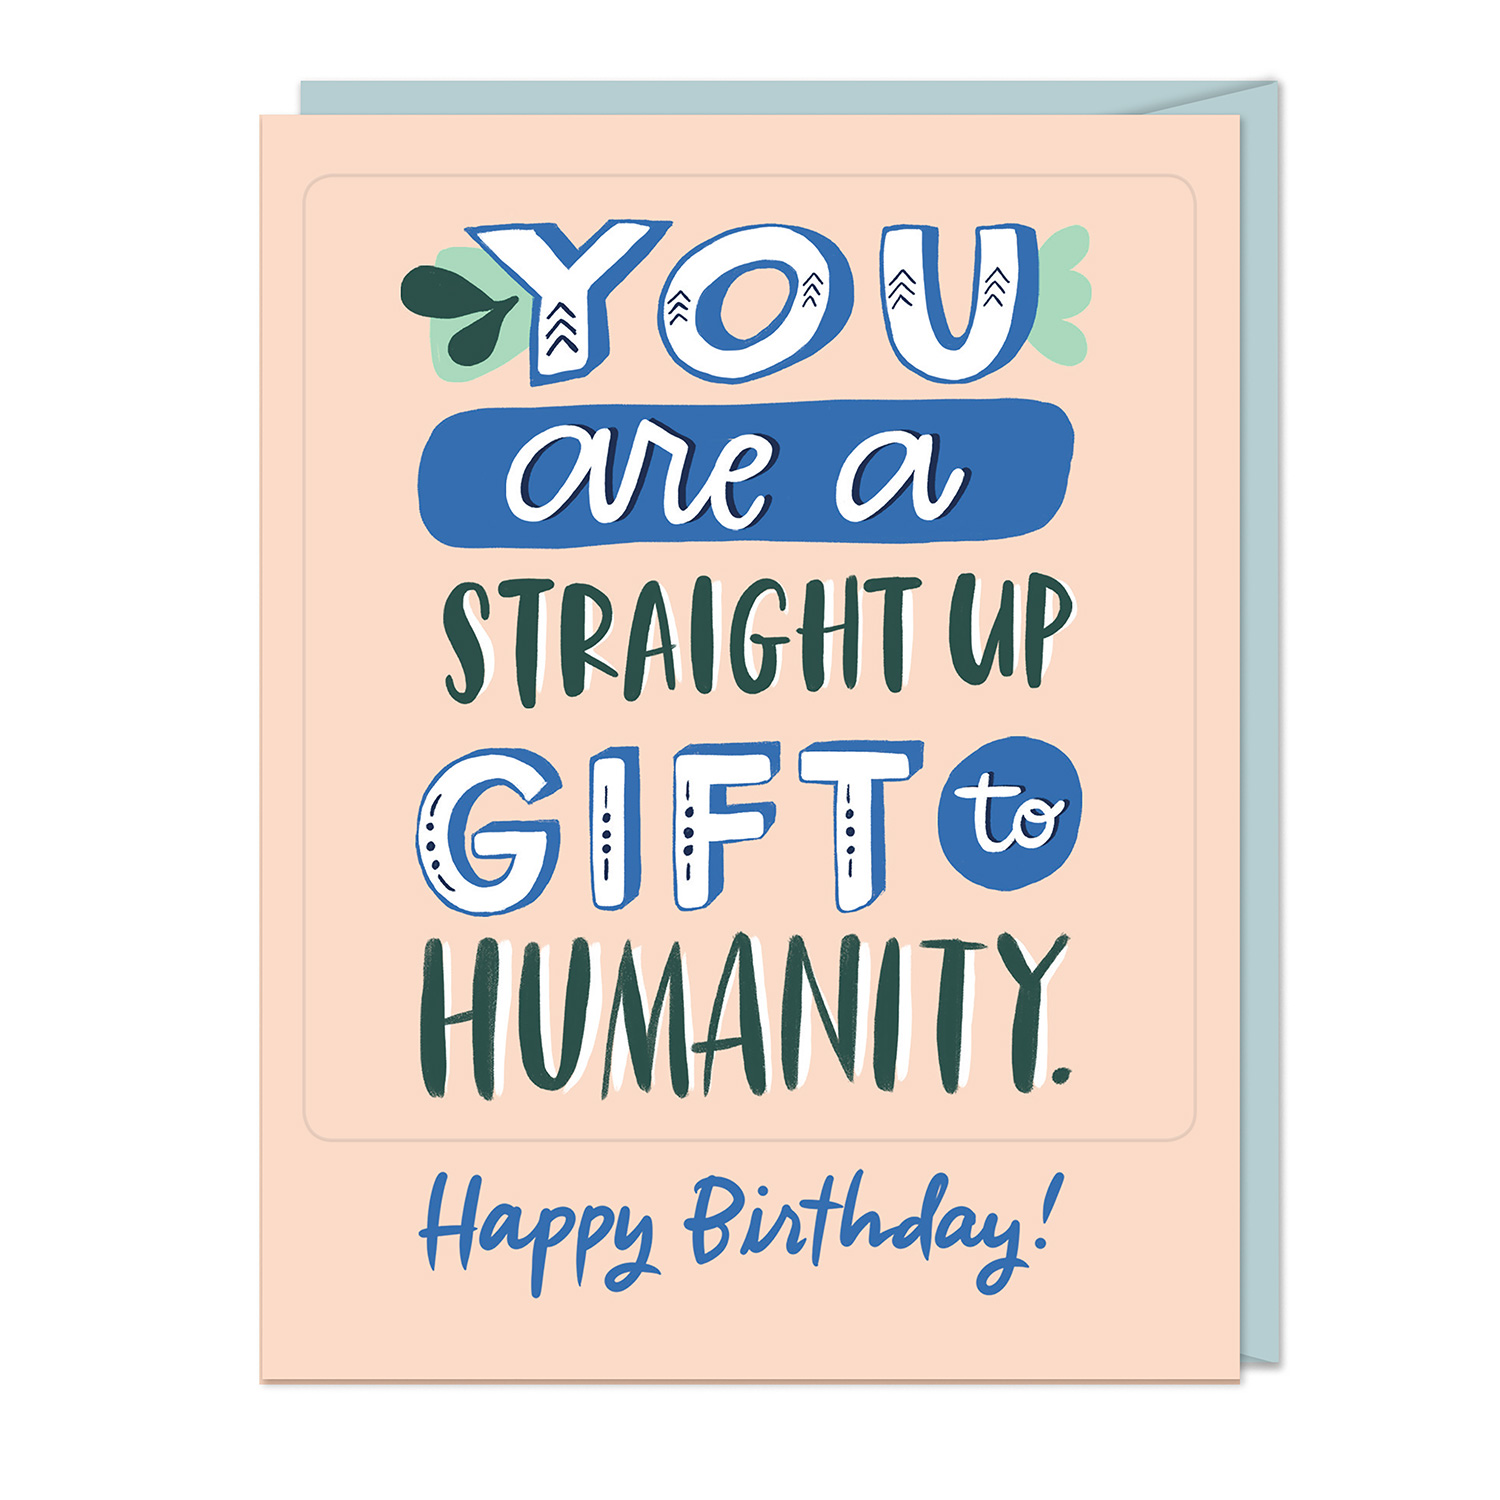 Sticker Cards: You Are a Straight Up Gift to Humanity! Happy Birthday!